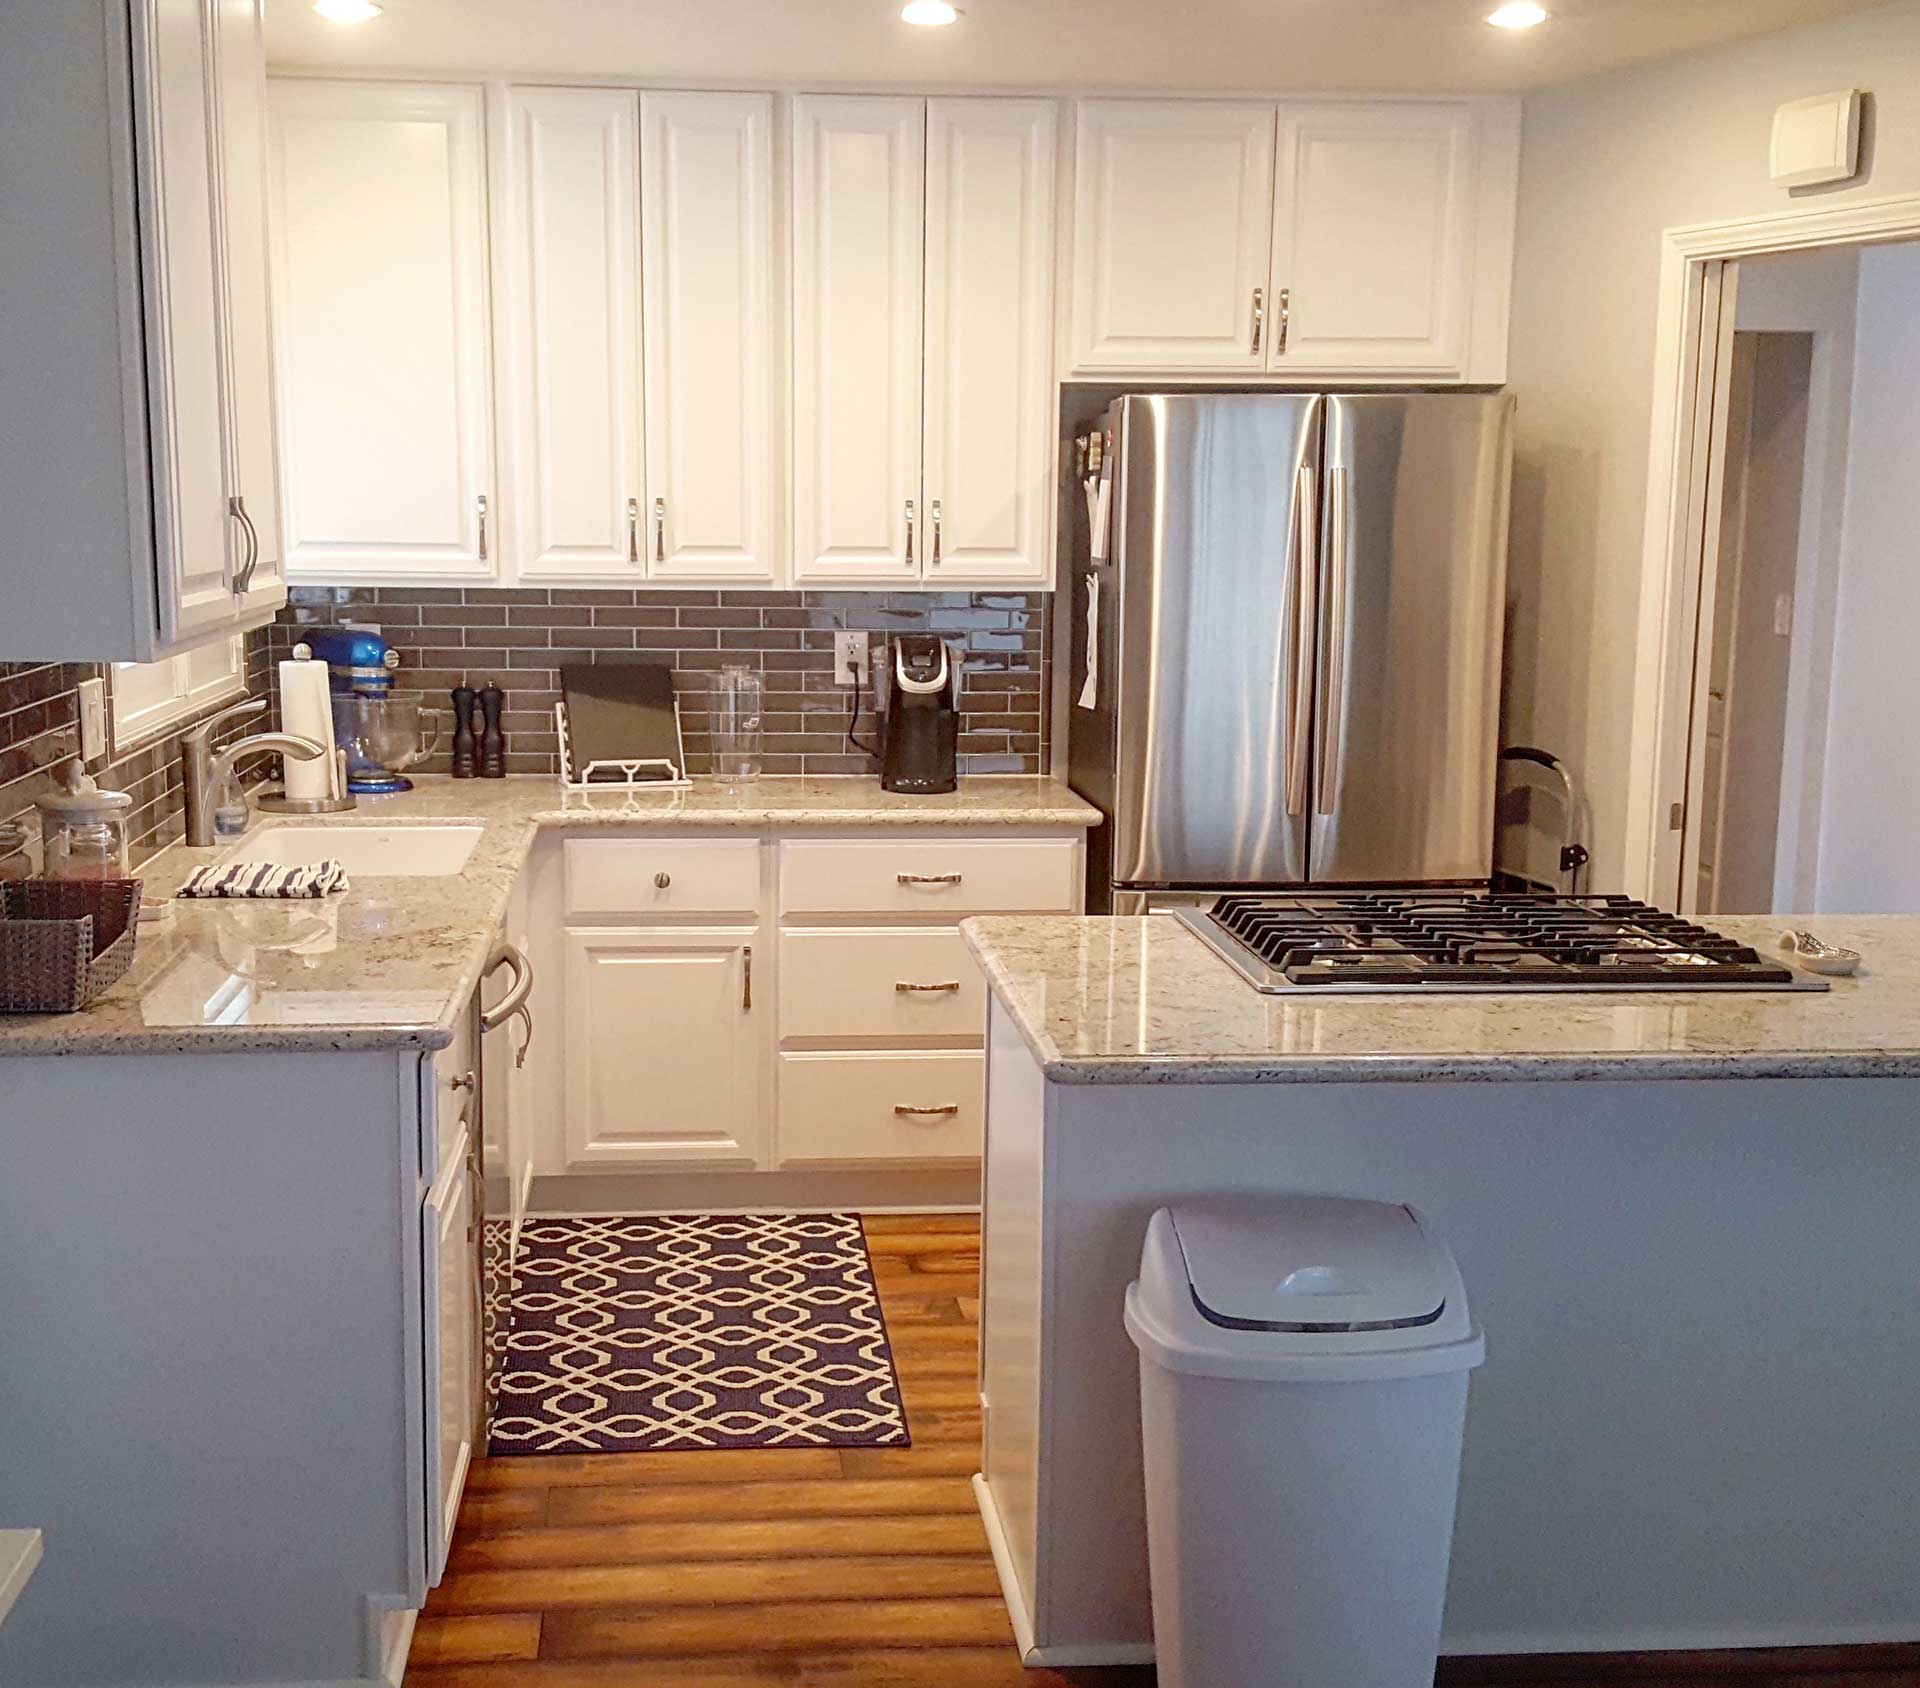 Kitchen Remodel White: Talk To A Pro About Kitchen Cabinets & Remodeling. Free